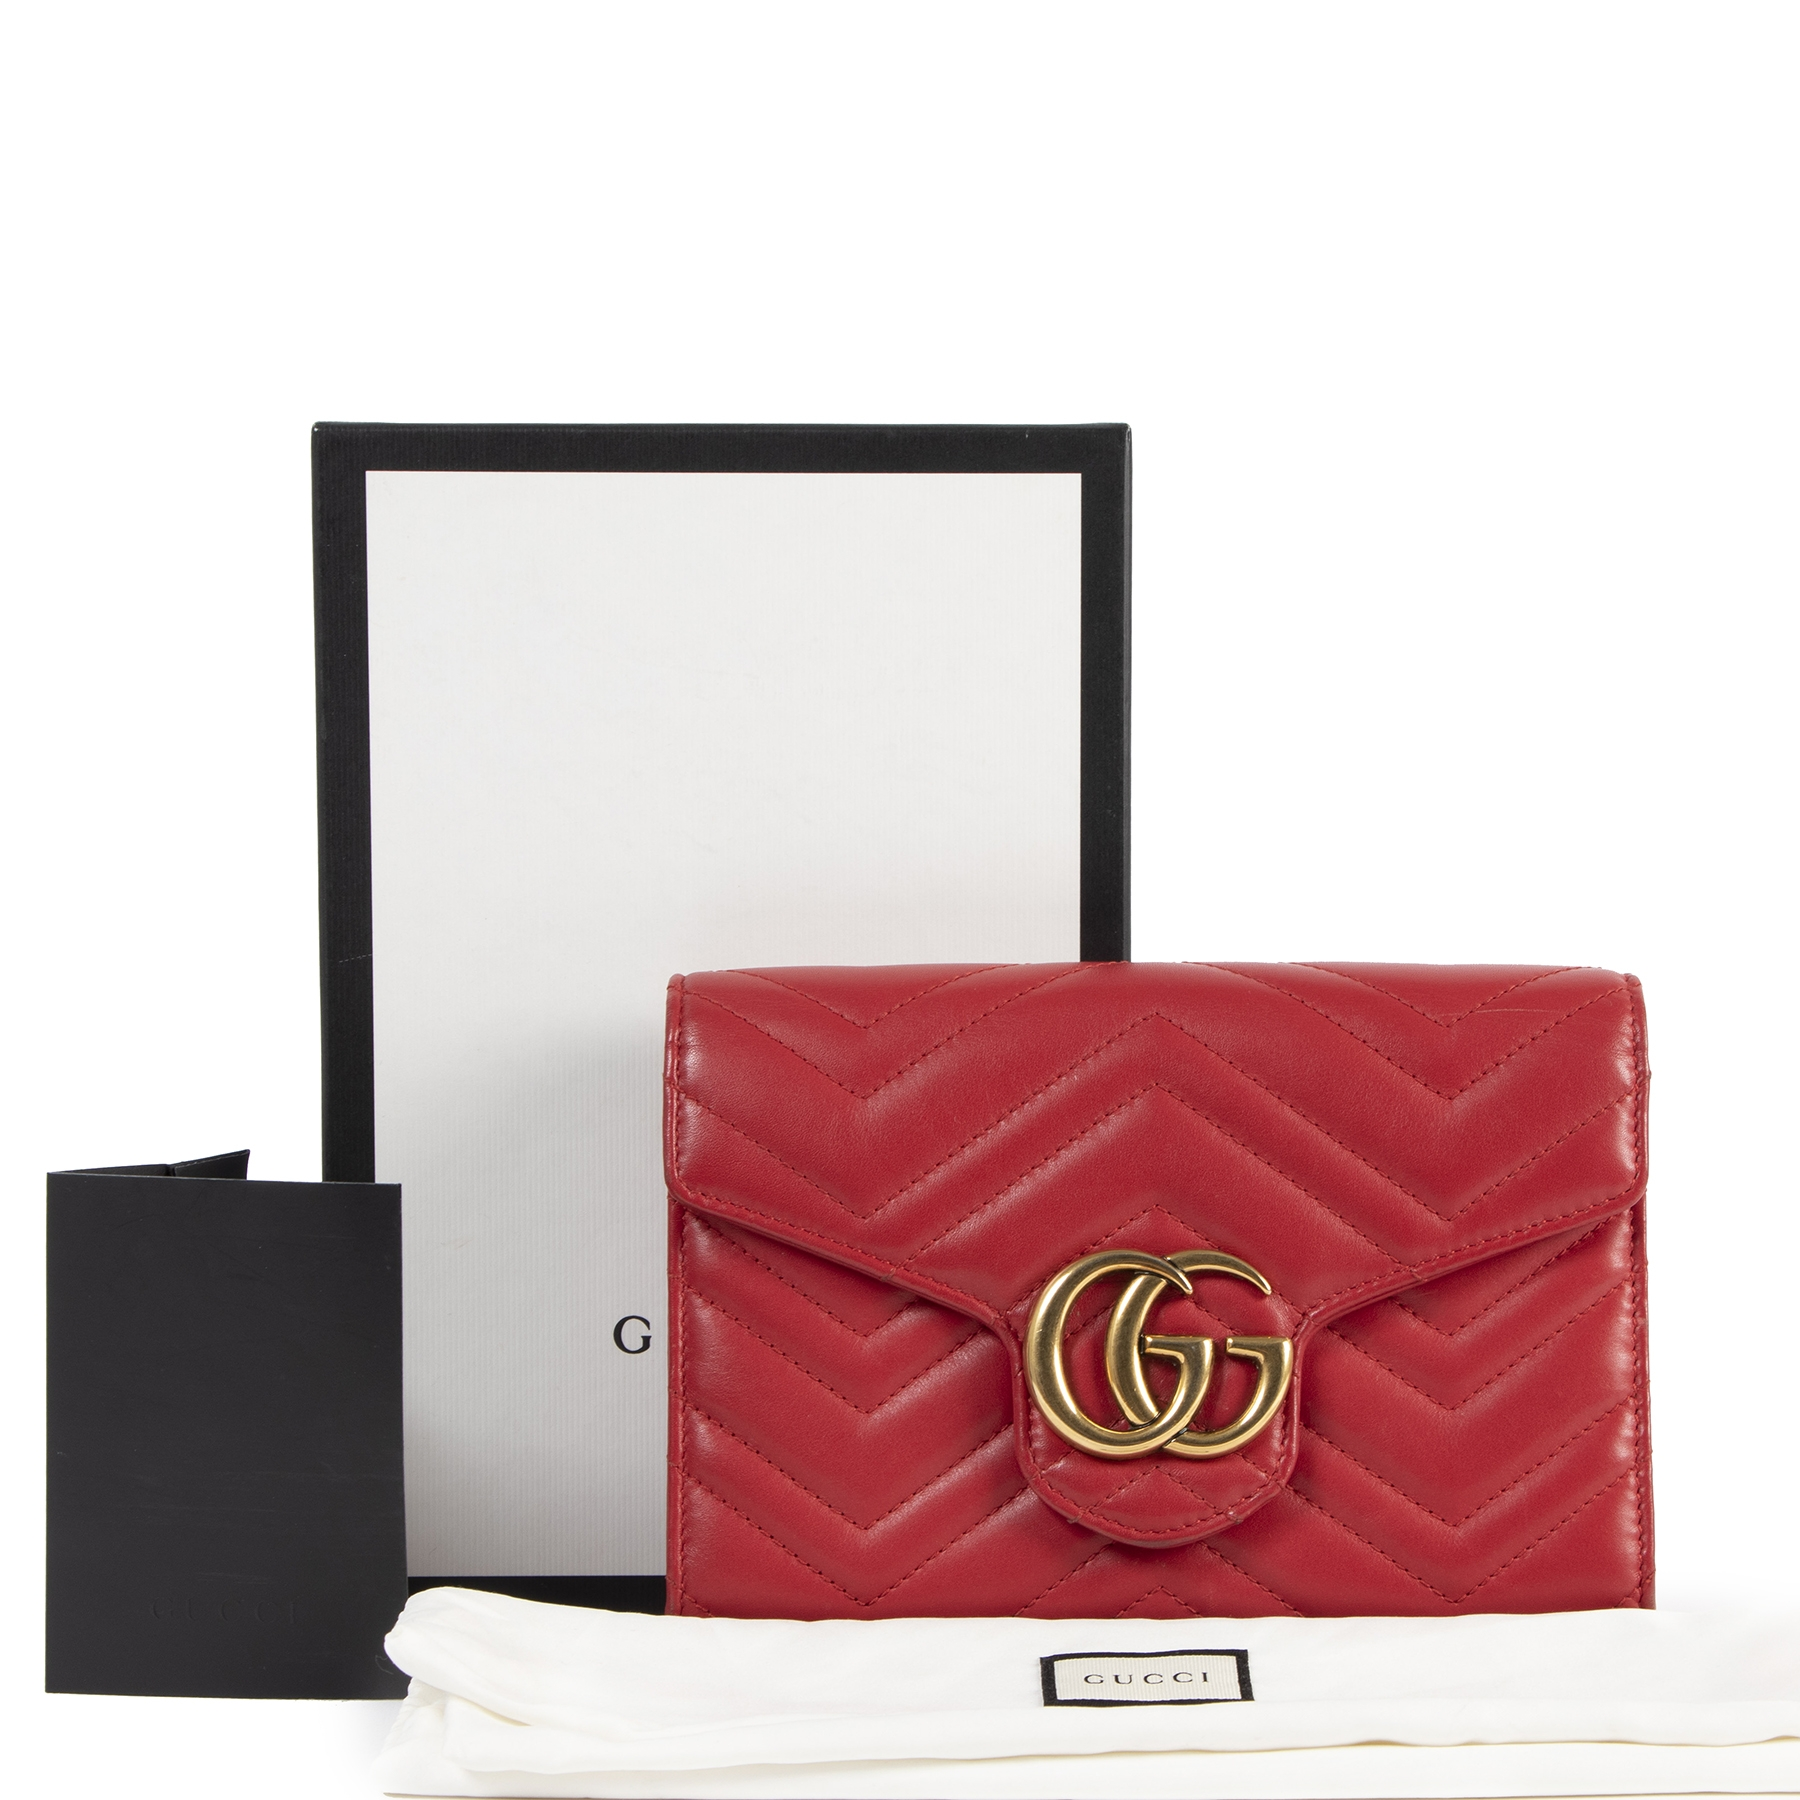 Authentieke tweedehands vintage Gucci GG Red Marmont Matelasse Leather Mini Bag koop online webshop LabelLOV